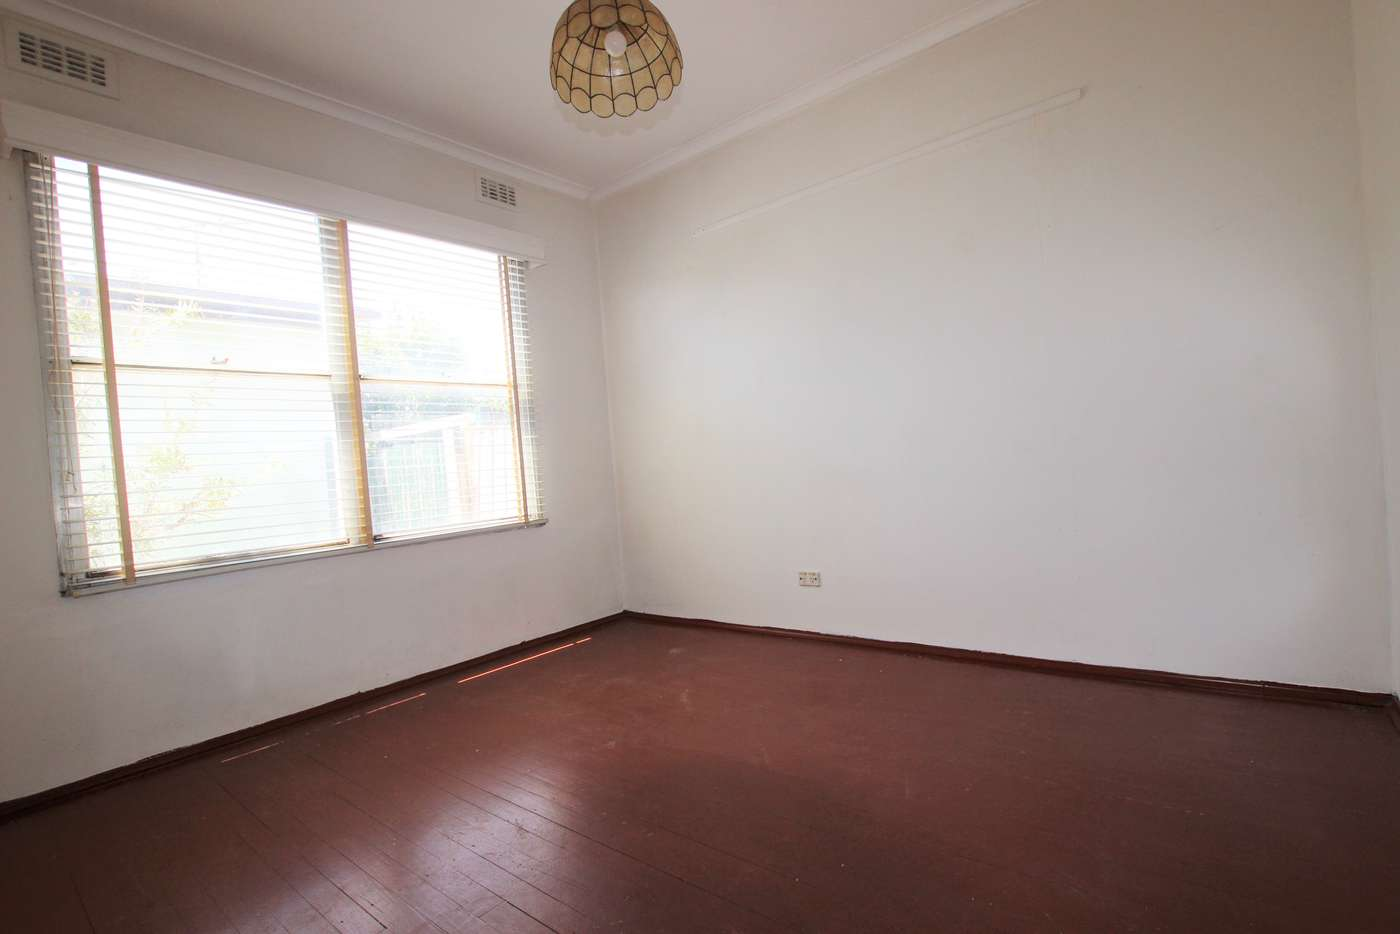 Sixth view of Homely house listing, 18 Mutton Road, Fawkner VIC 3060